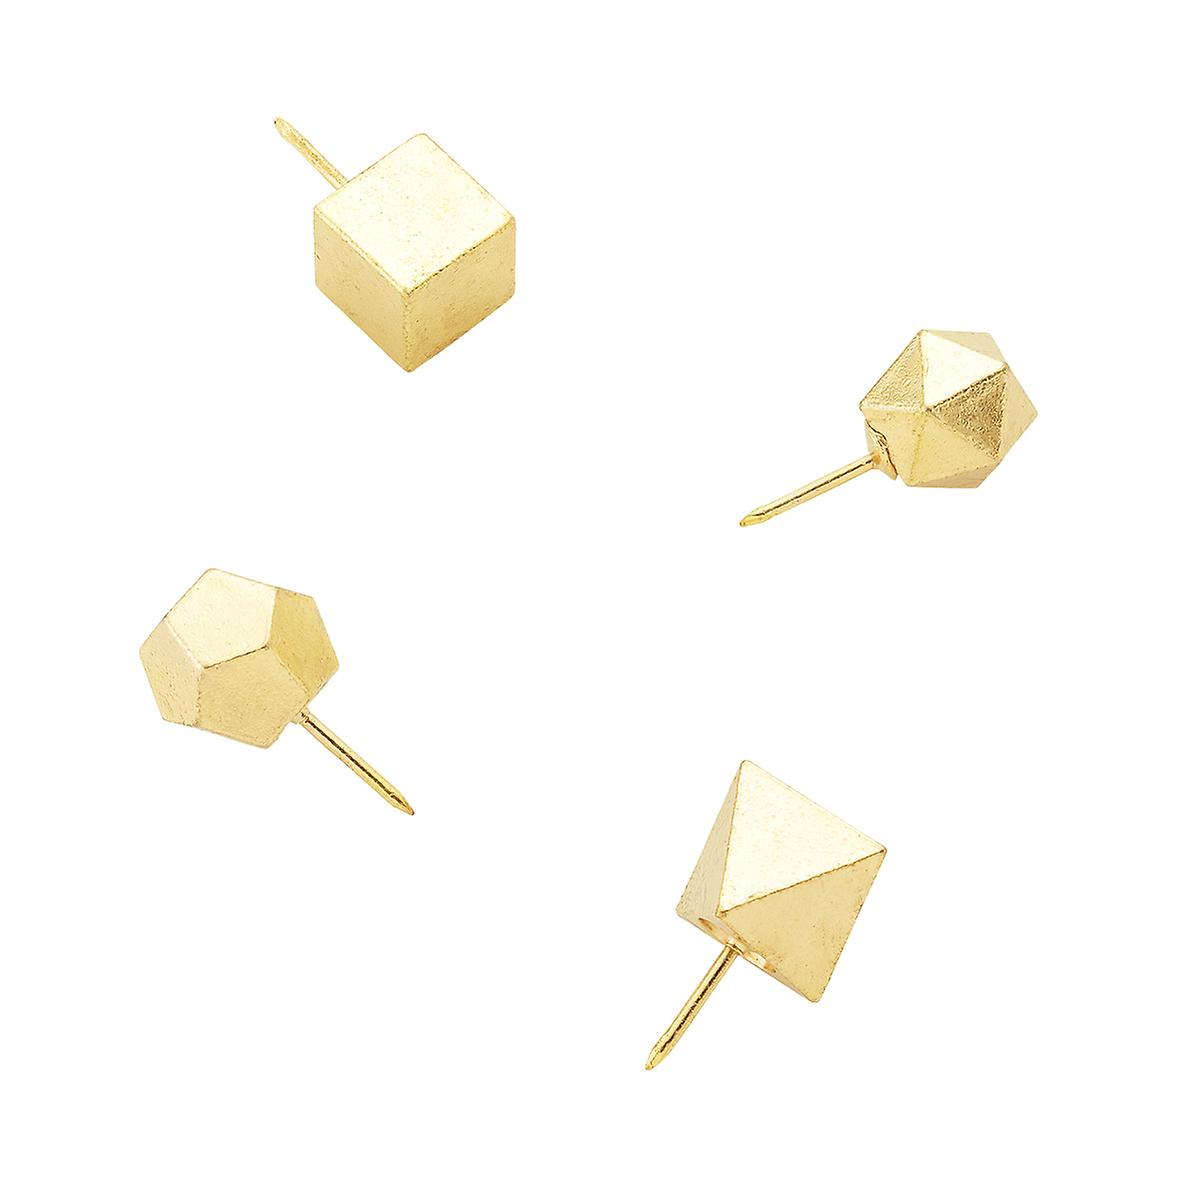 Three by Three Polyhedra Shape Gold Push Pins